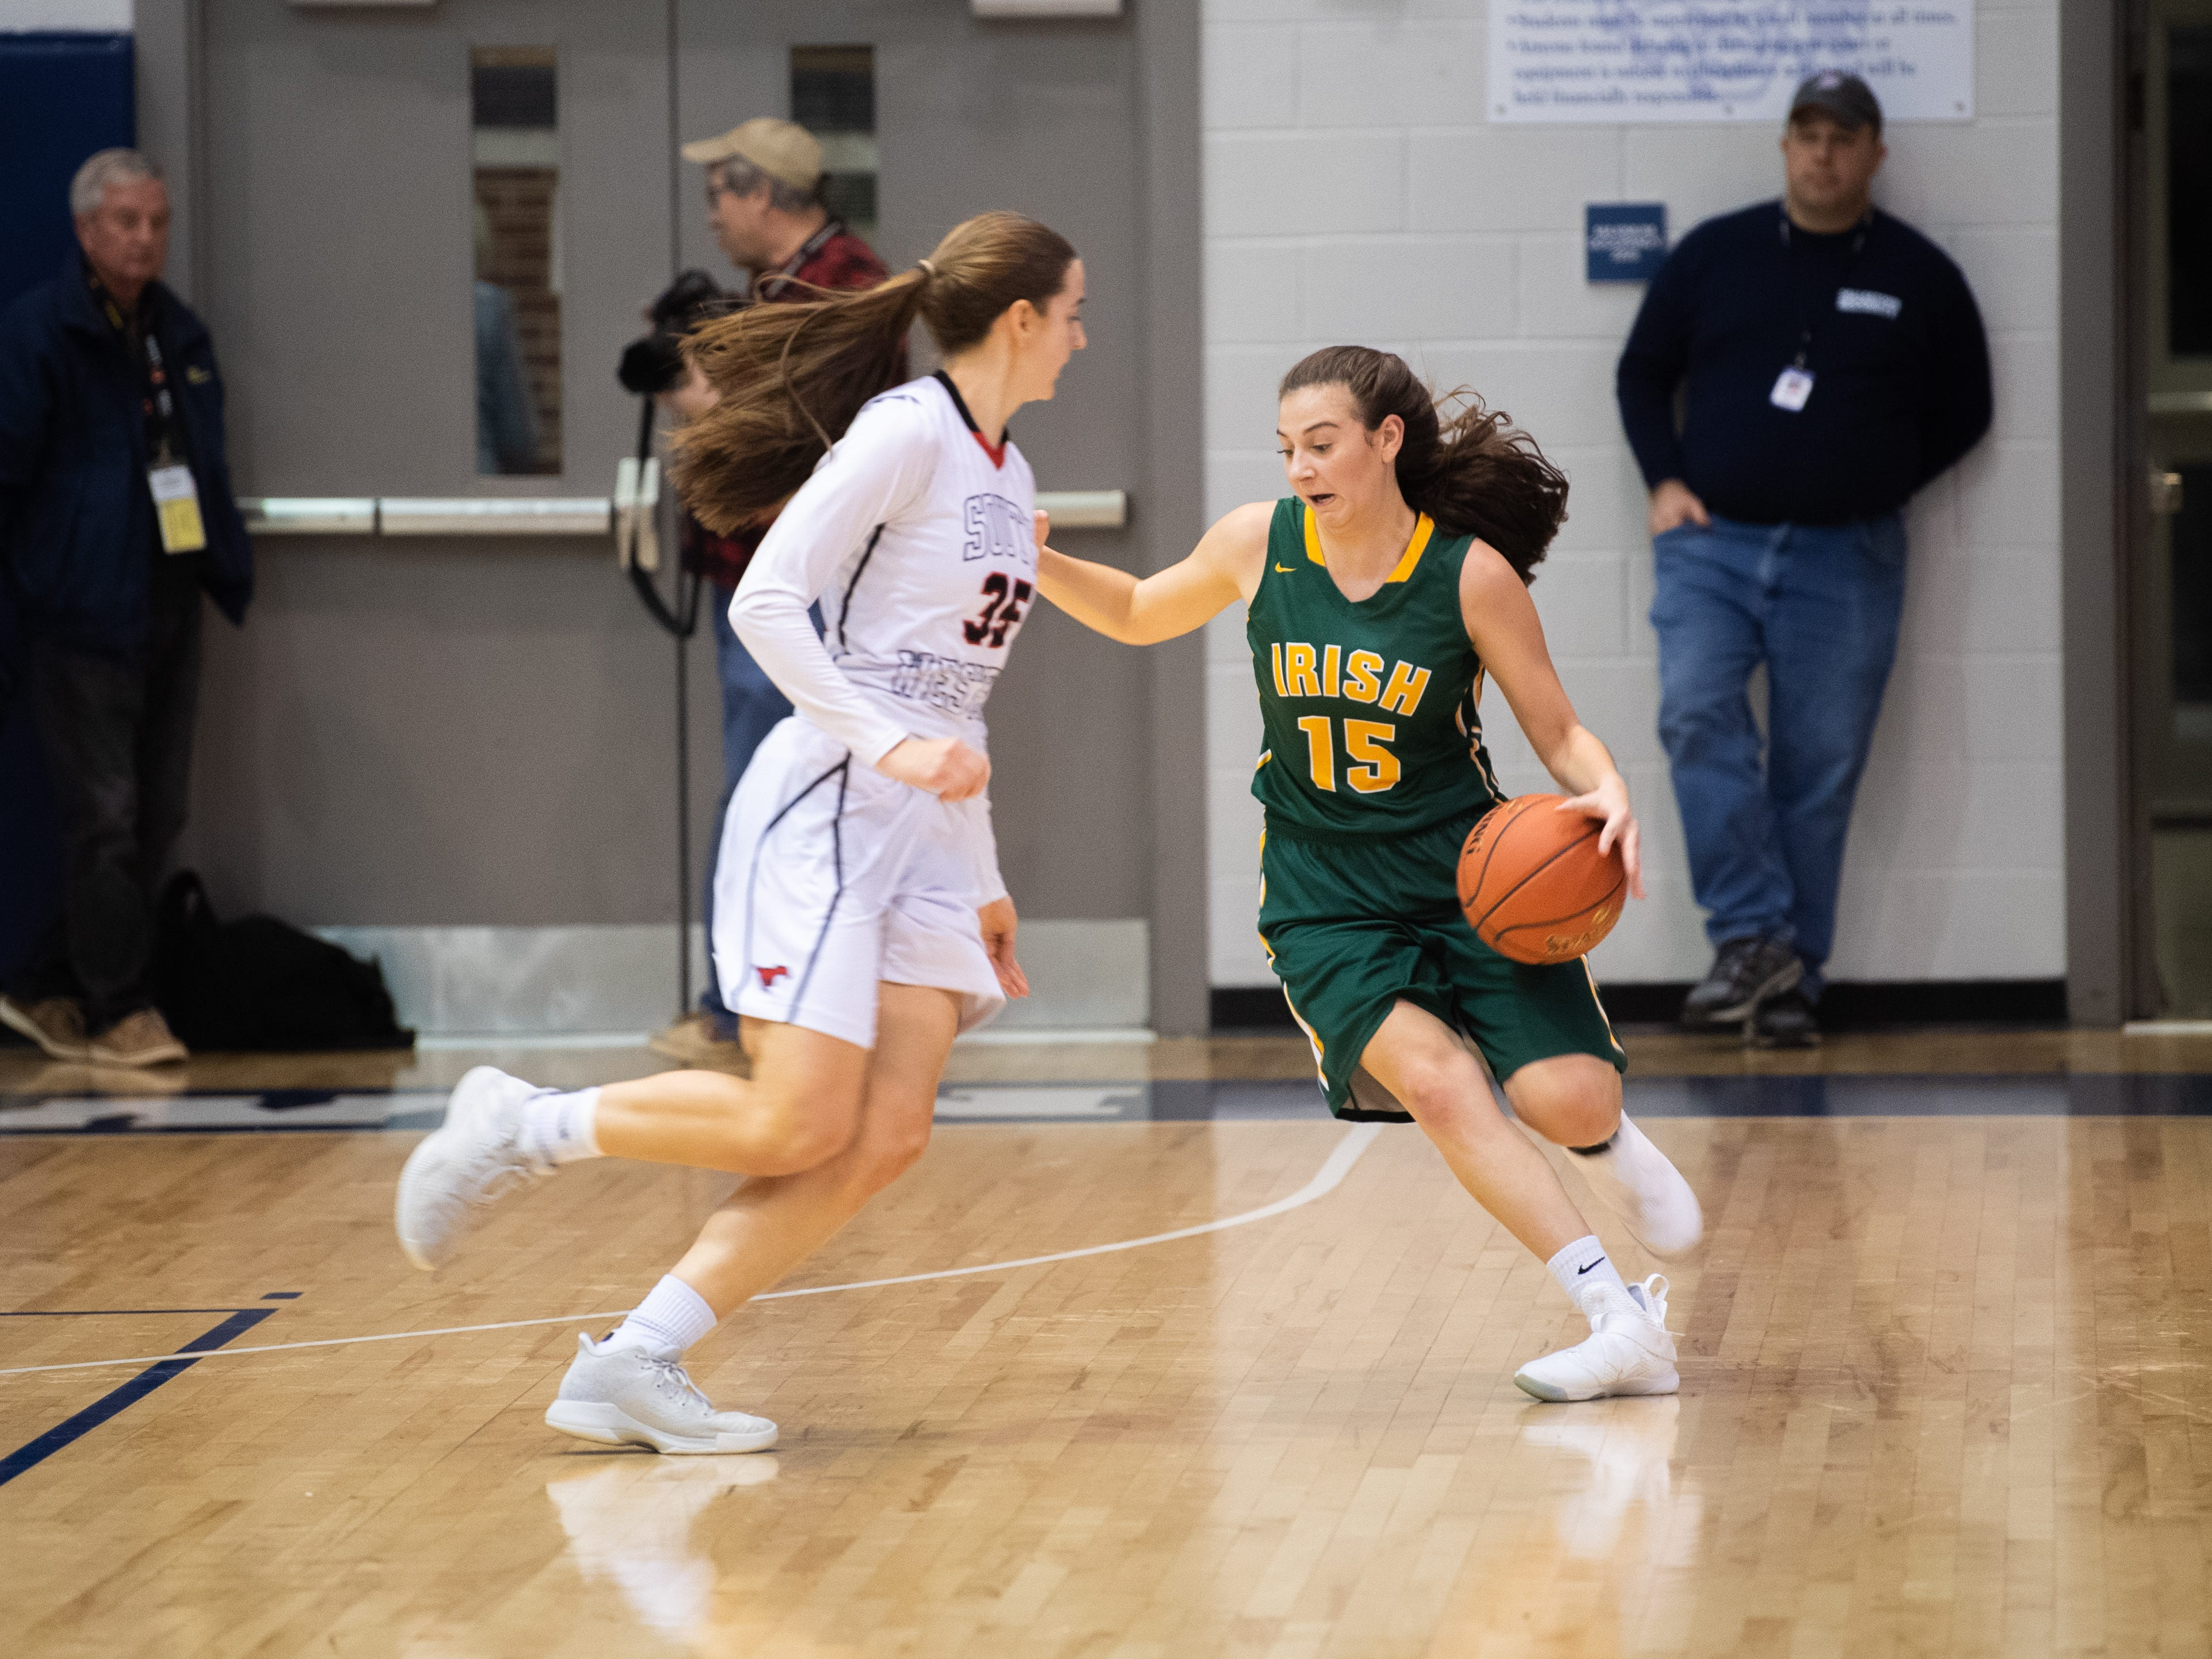 Dominica Martello (15) of York Catholic tries to beat the defense during the YAIAA girls' basketball quarterfinal game between South Western and York Catholic, February 8, 2019 at Dallastown Area High School. The Mustangs defeated the Fighting Irish at 53-20.